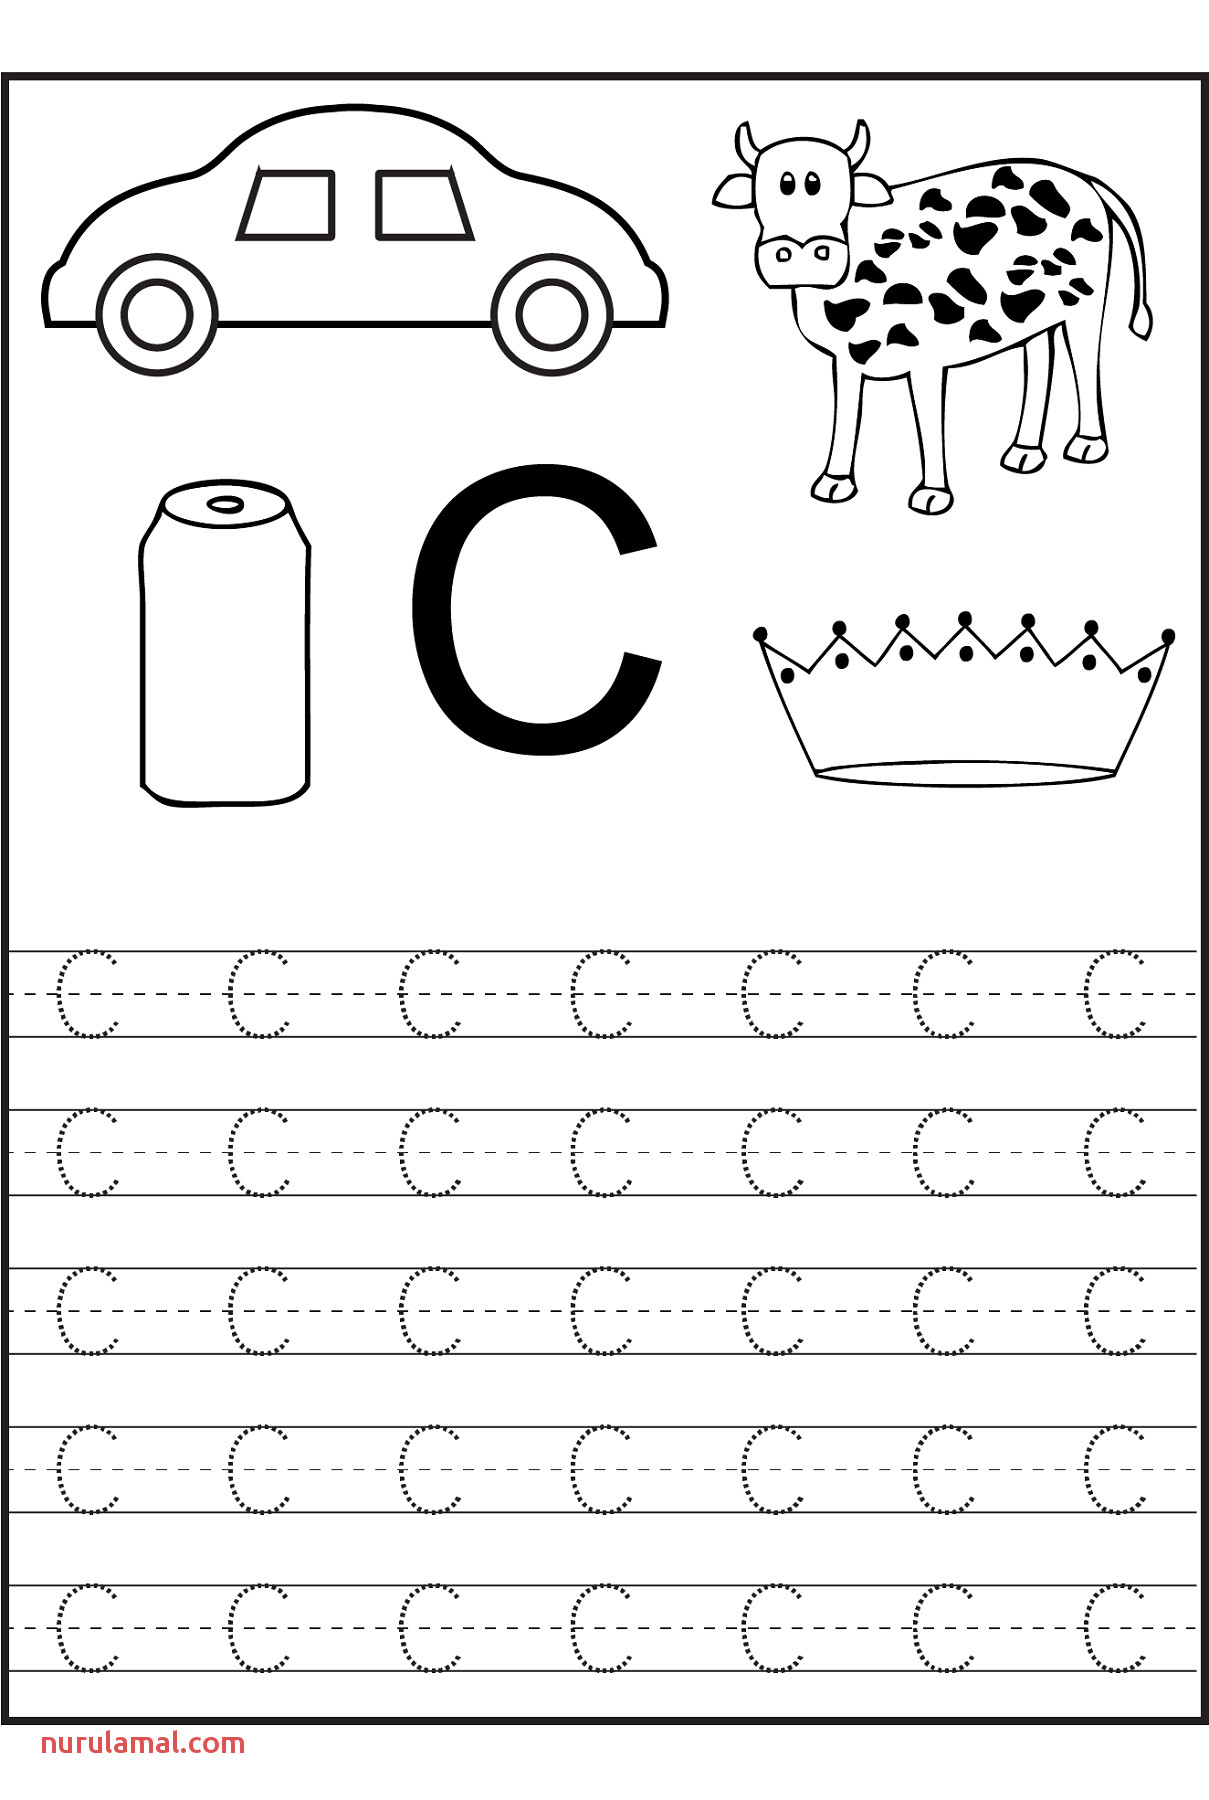 Coloring Pages Trace the Letter Worksheets Preschool